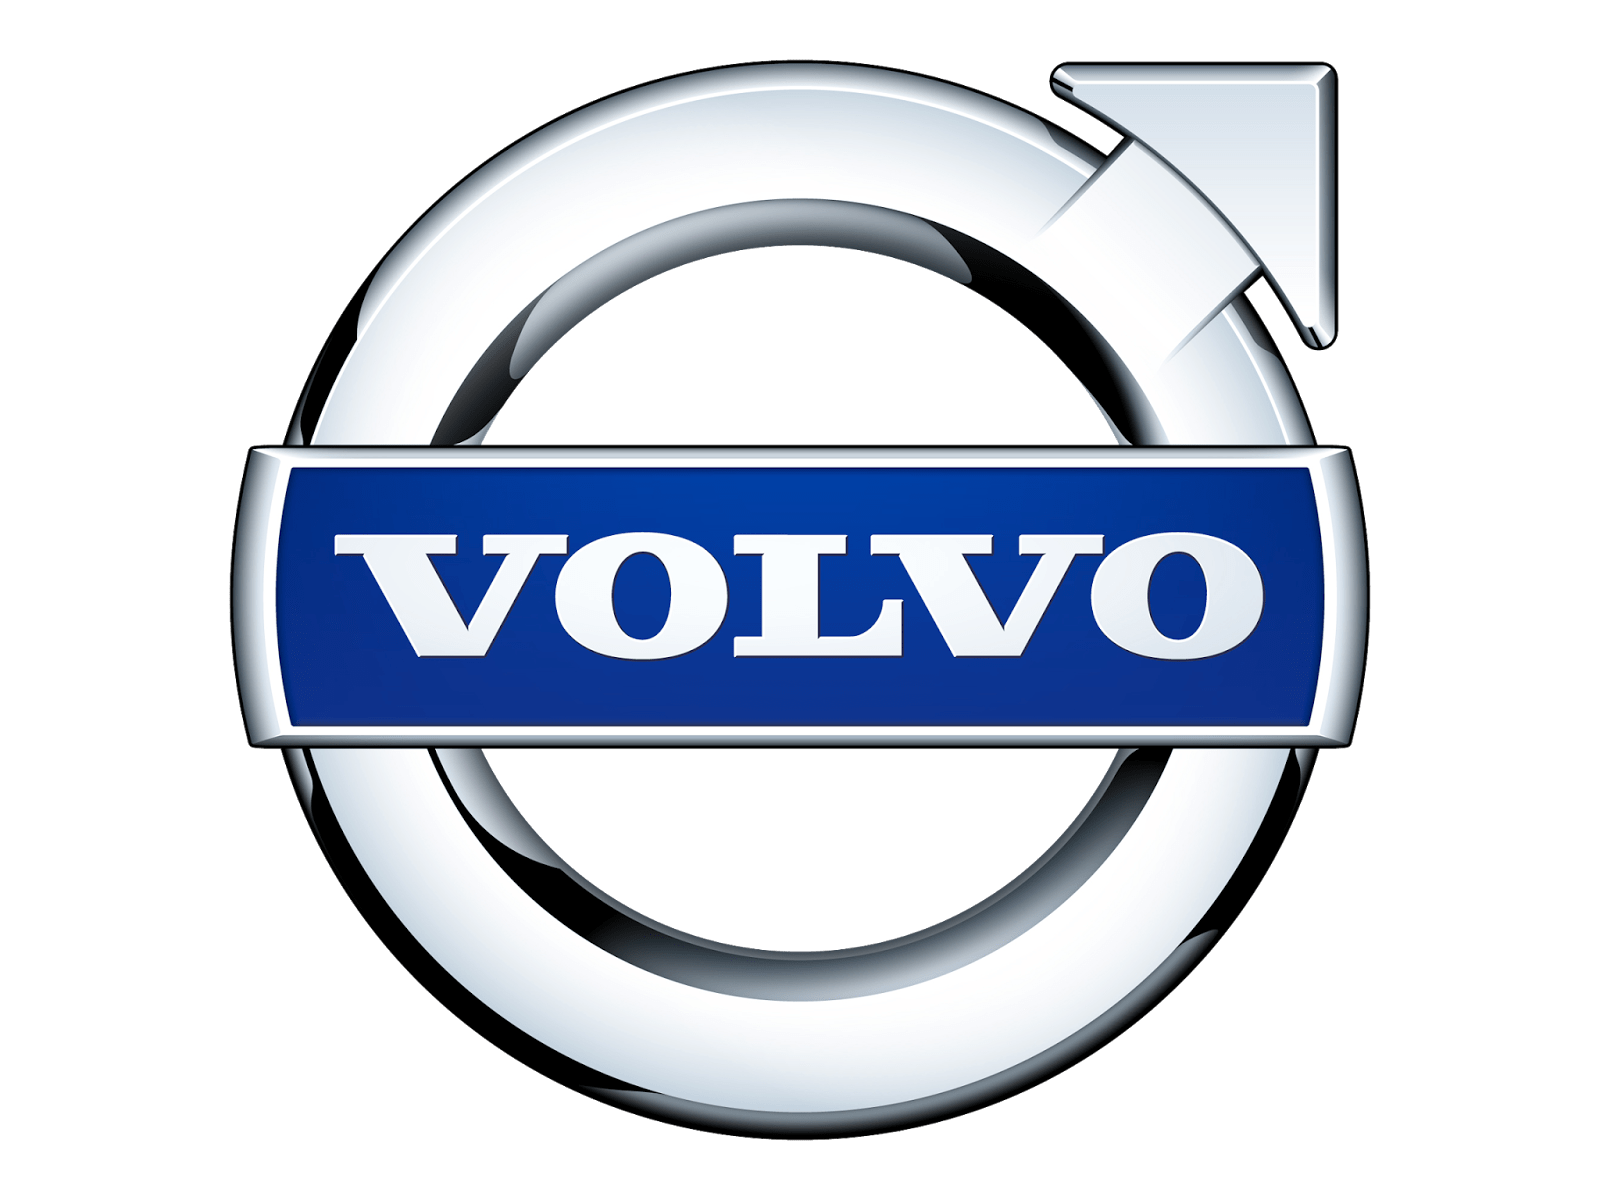 Volvo Global Performance